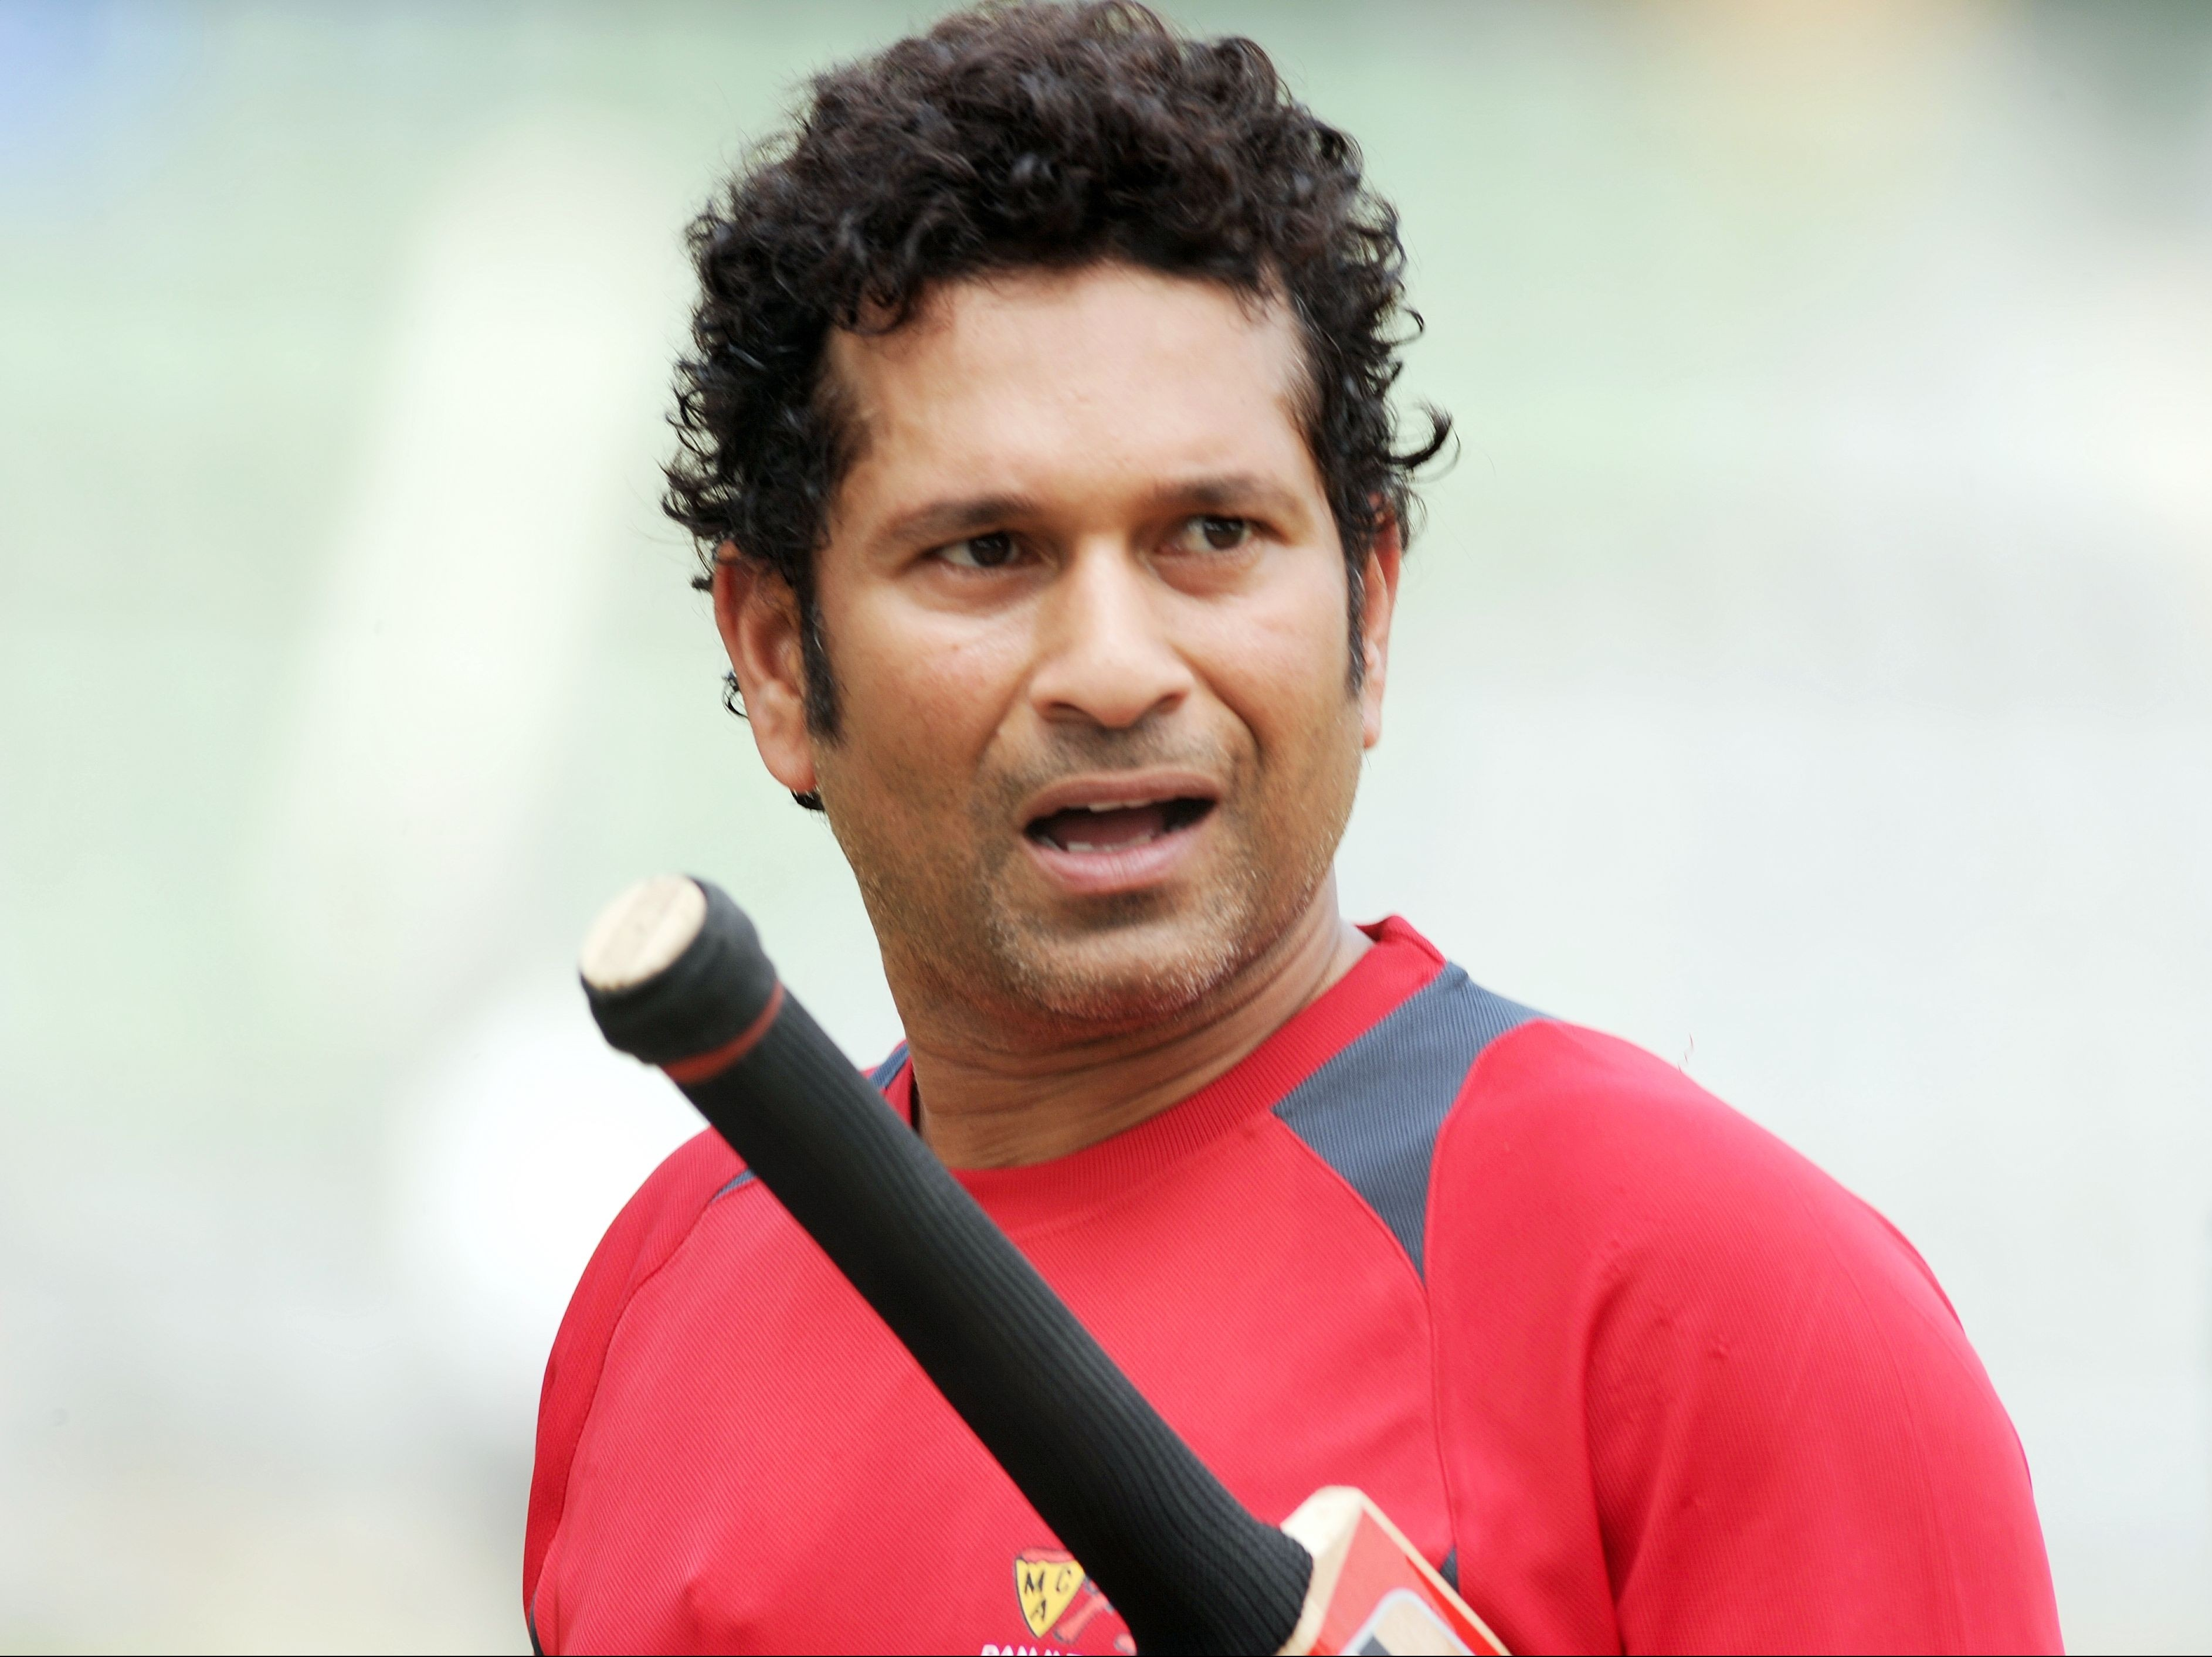 Hd Sachin Tendulkar Beautiful Look With Bat Still Mobile Background Free Desktop Photo